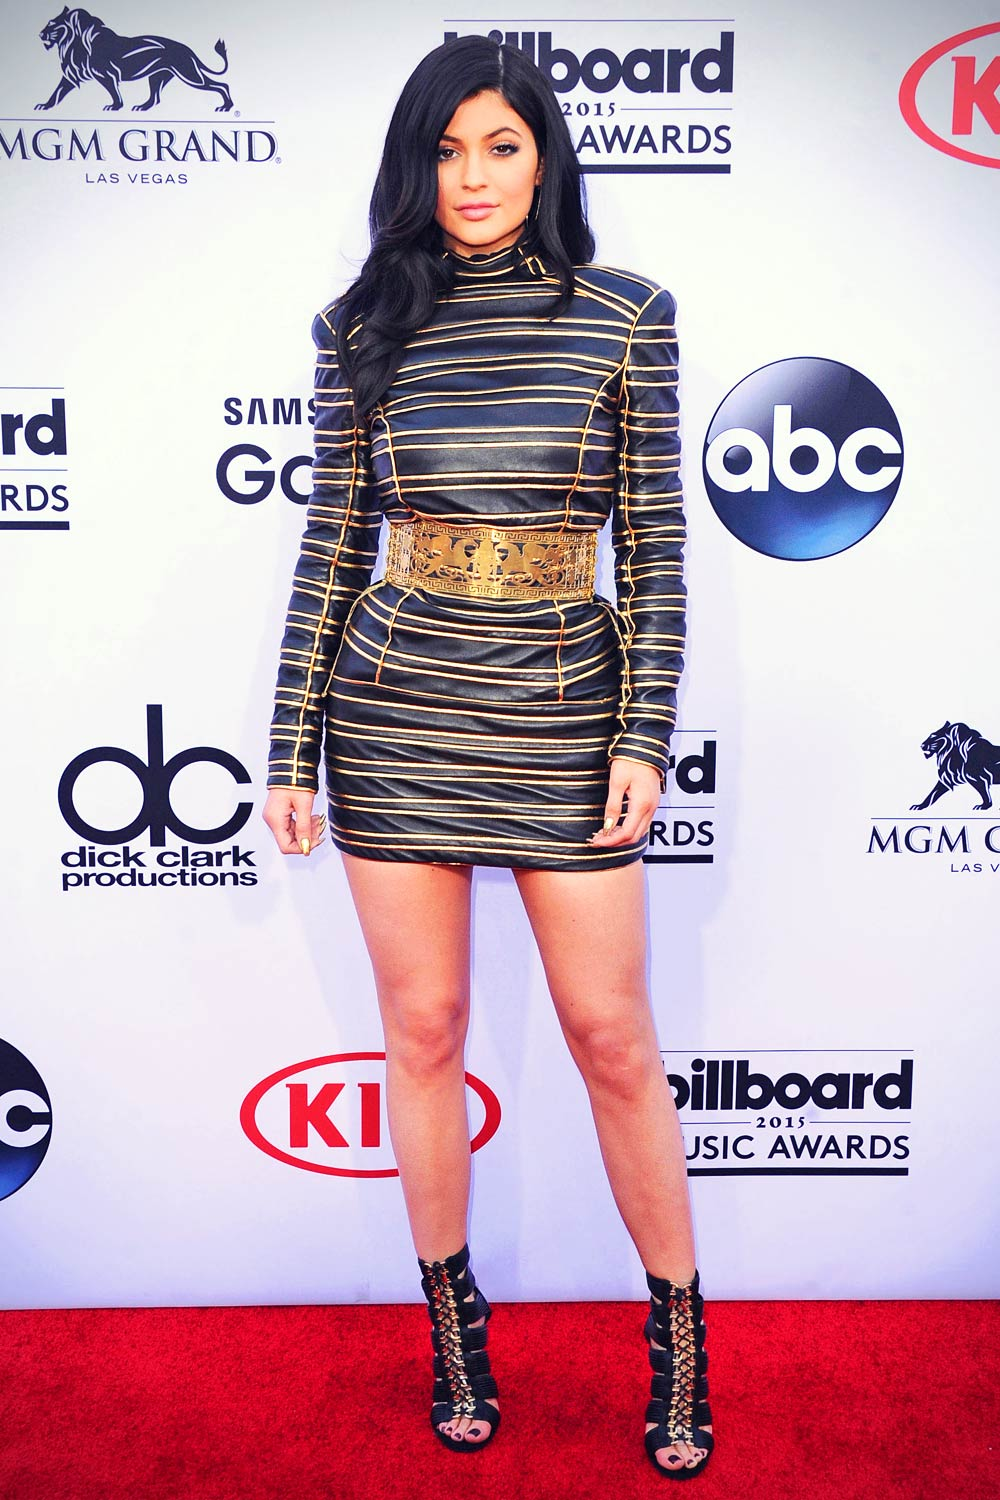 Kylie Jenner attends the 2015 Billboard Music Awards